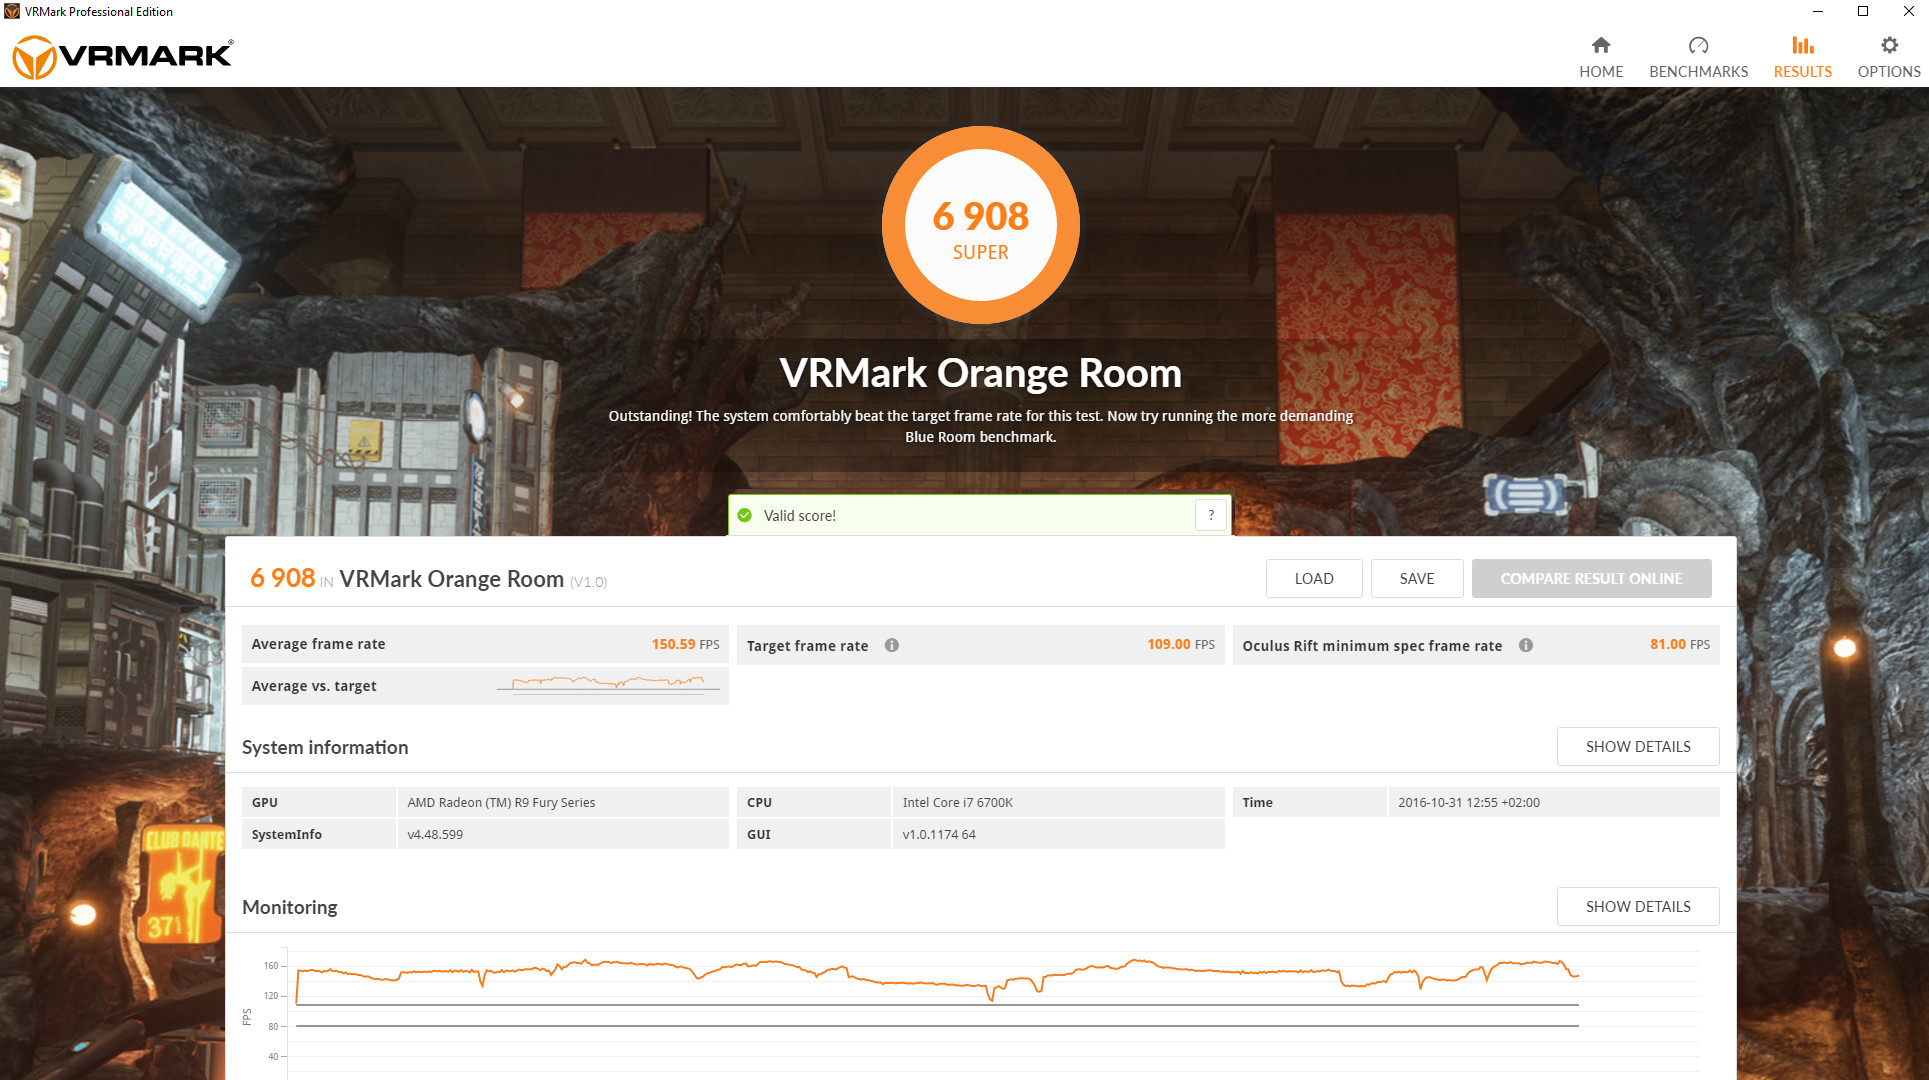 vrmark-orange-room-result-screen-600